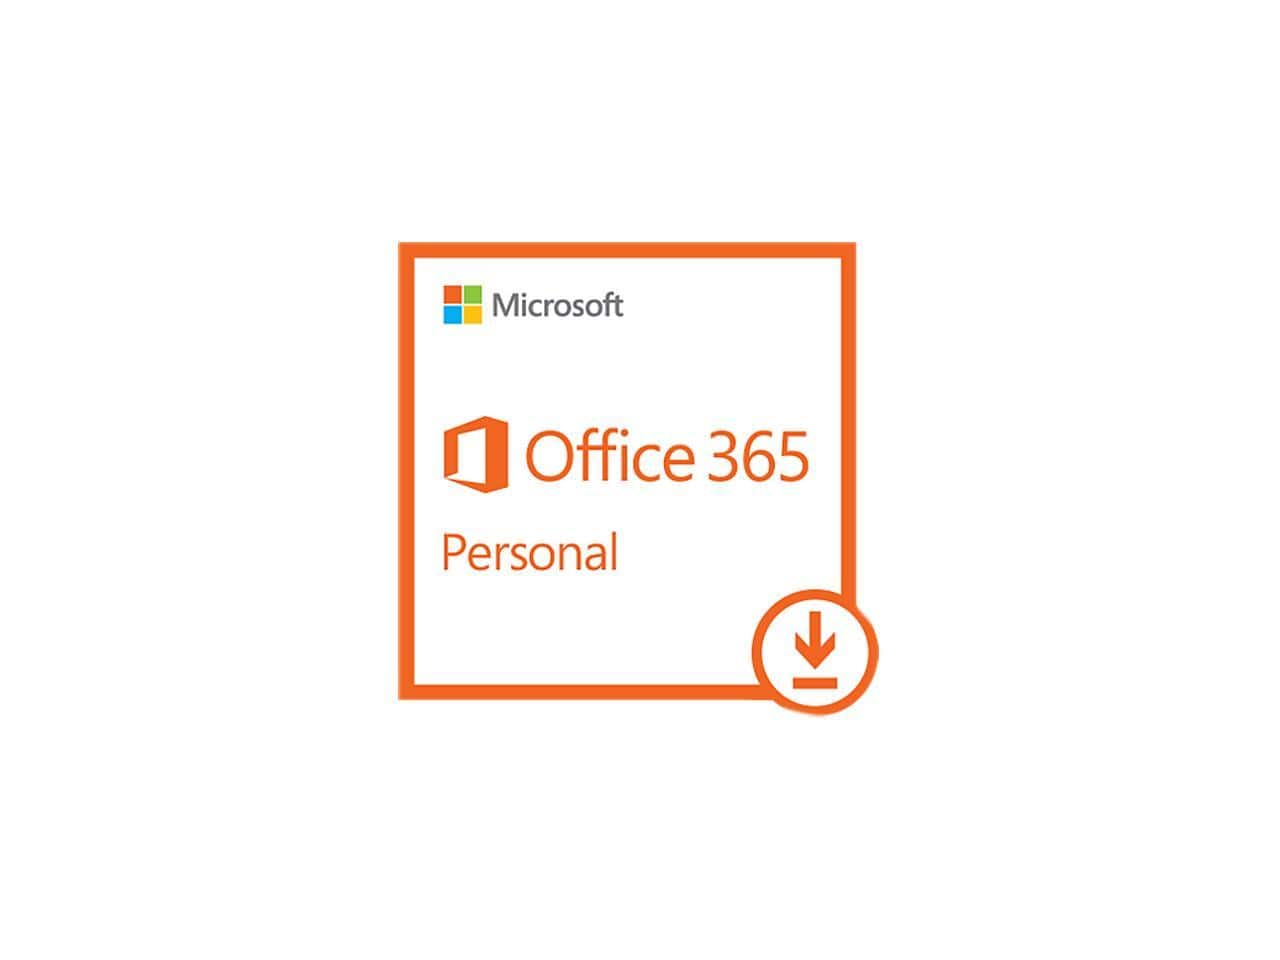 Microsoft Office 365 Personal (Download - 1 yr. subscription) - Newegg - $49.99 (see price in cart)